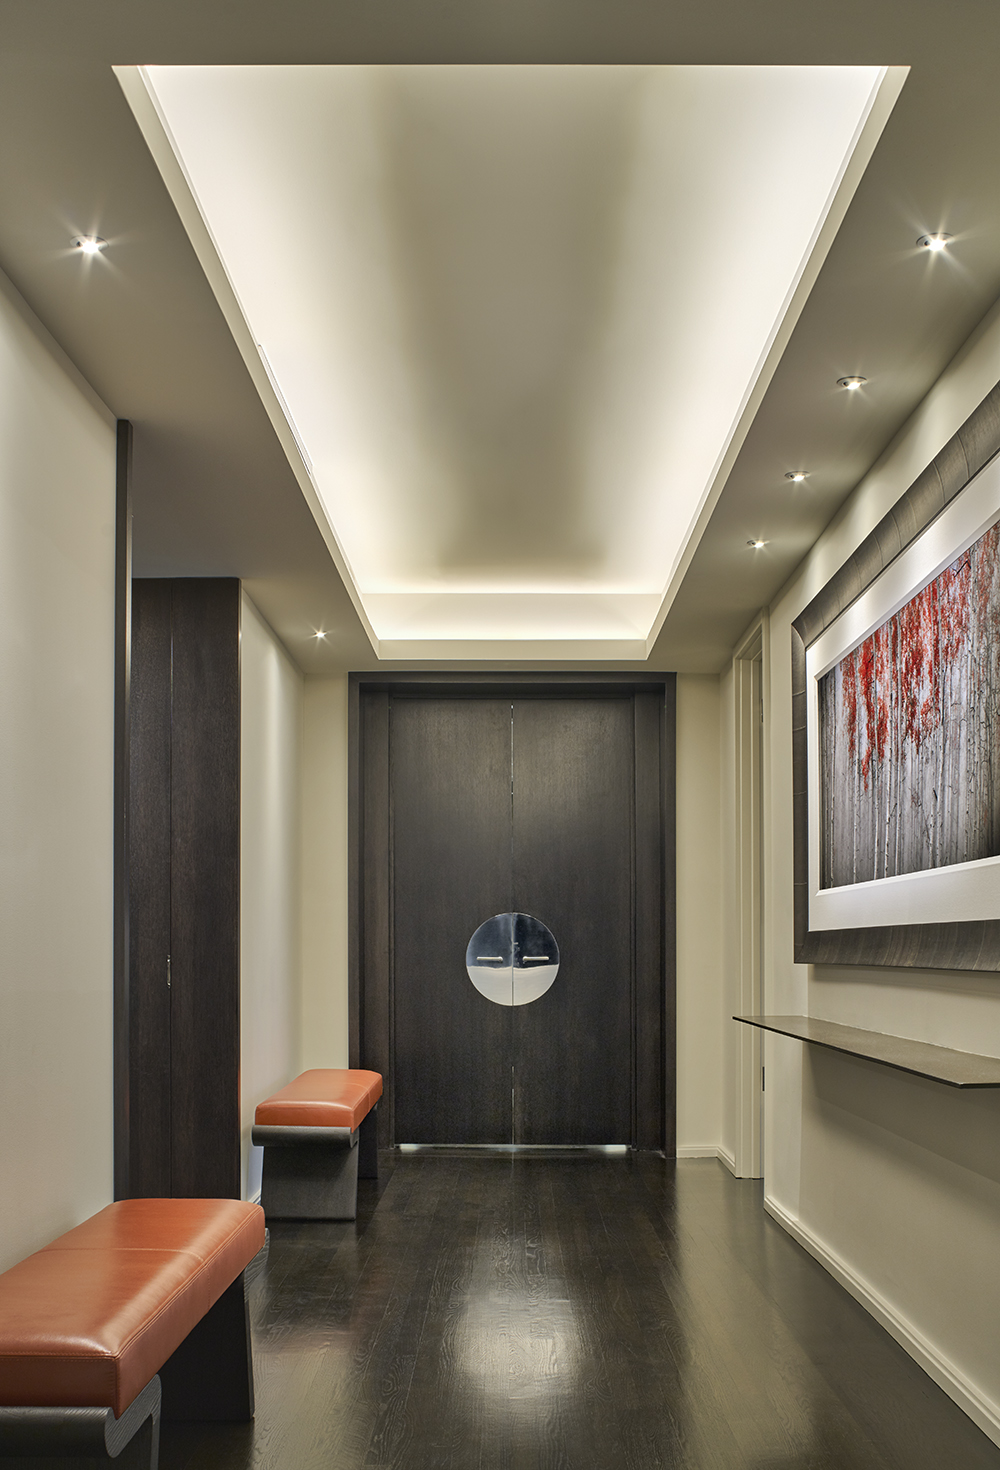 Entry Foyer with Bespoke Doors and Hardware Design in a Residence at The Watertower